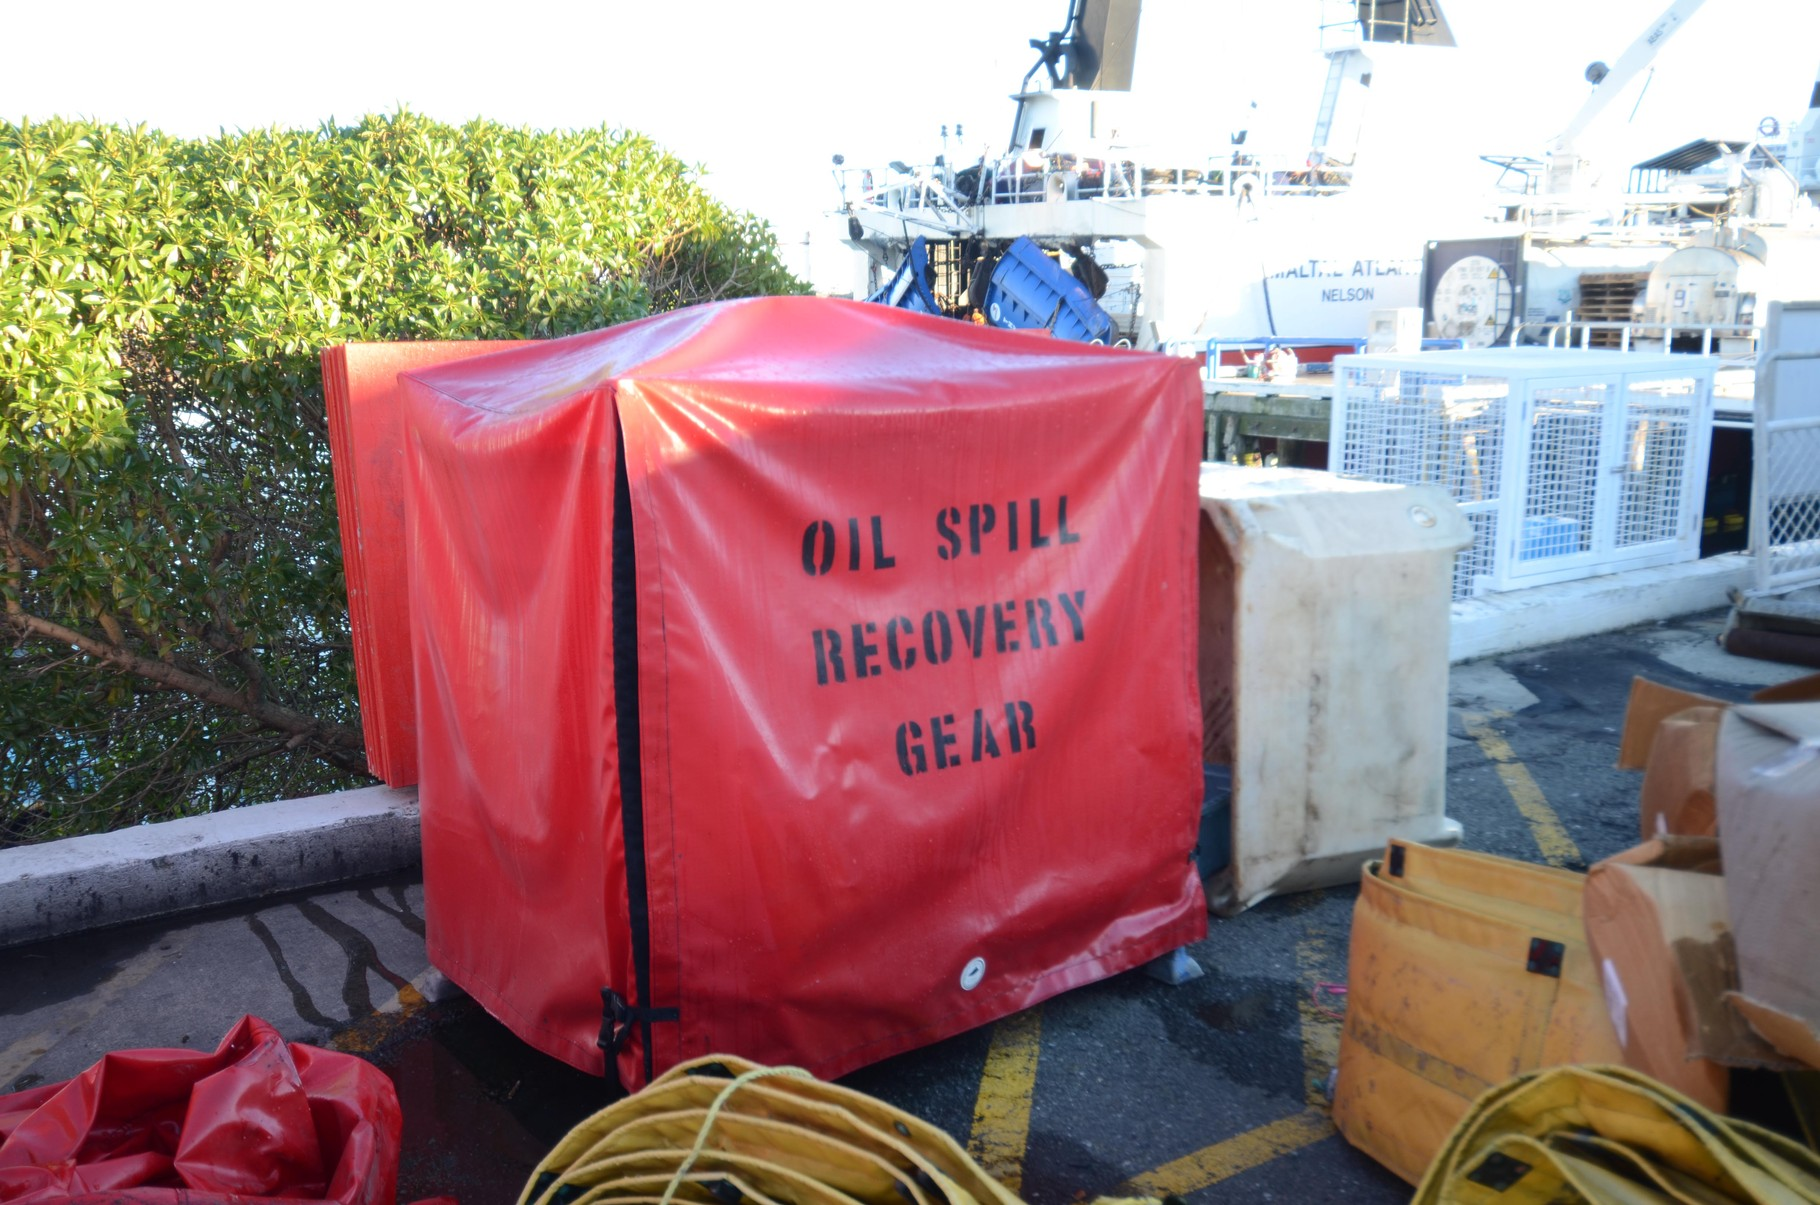 Oil Spill Recovery Gear Cover